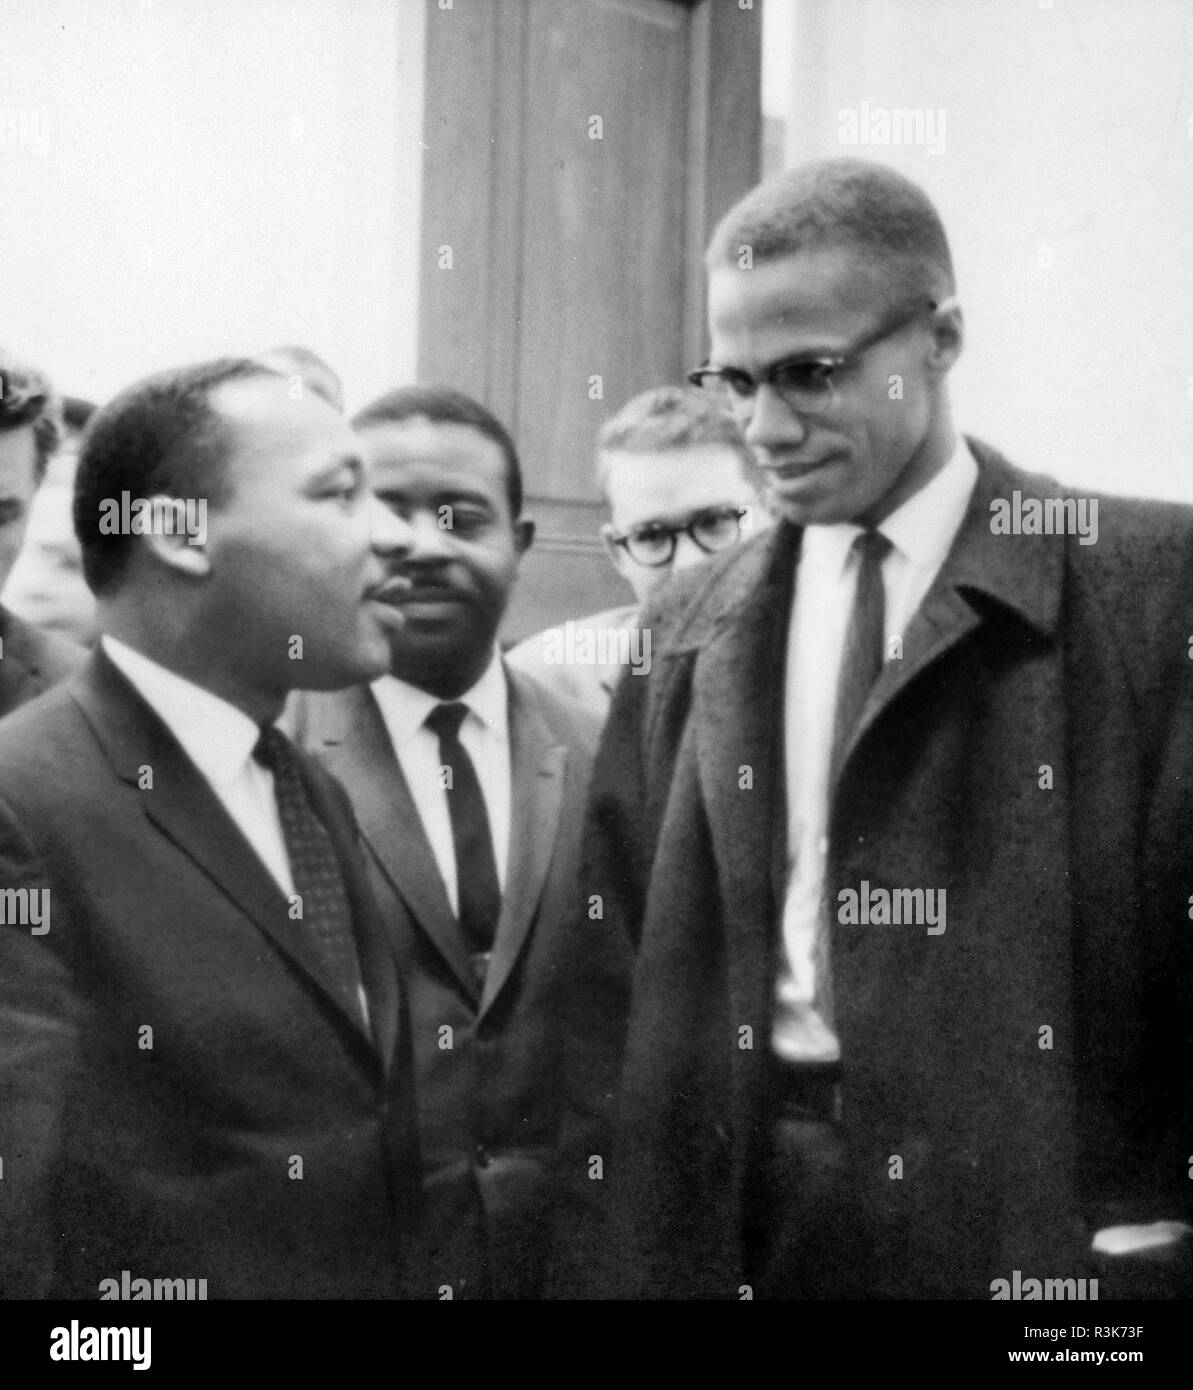 Martin Luther King 1929 1968 American Civil Rights Leader At Left